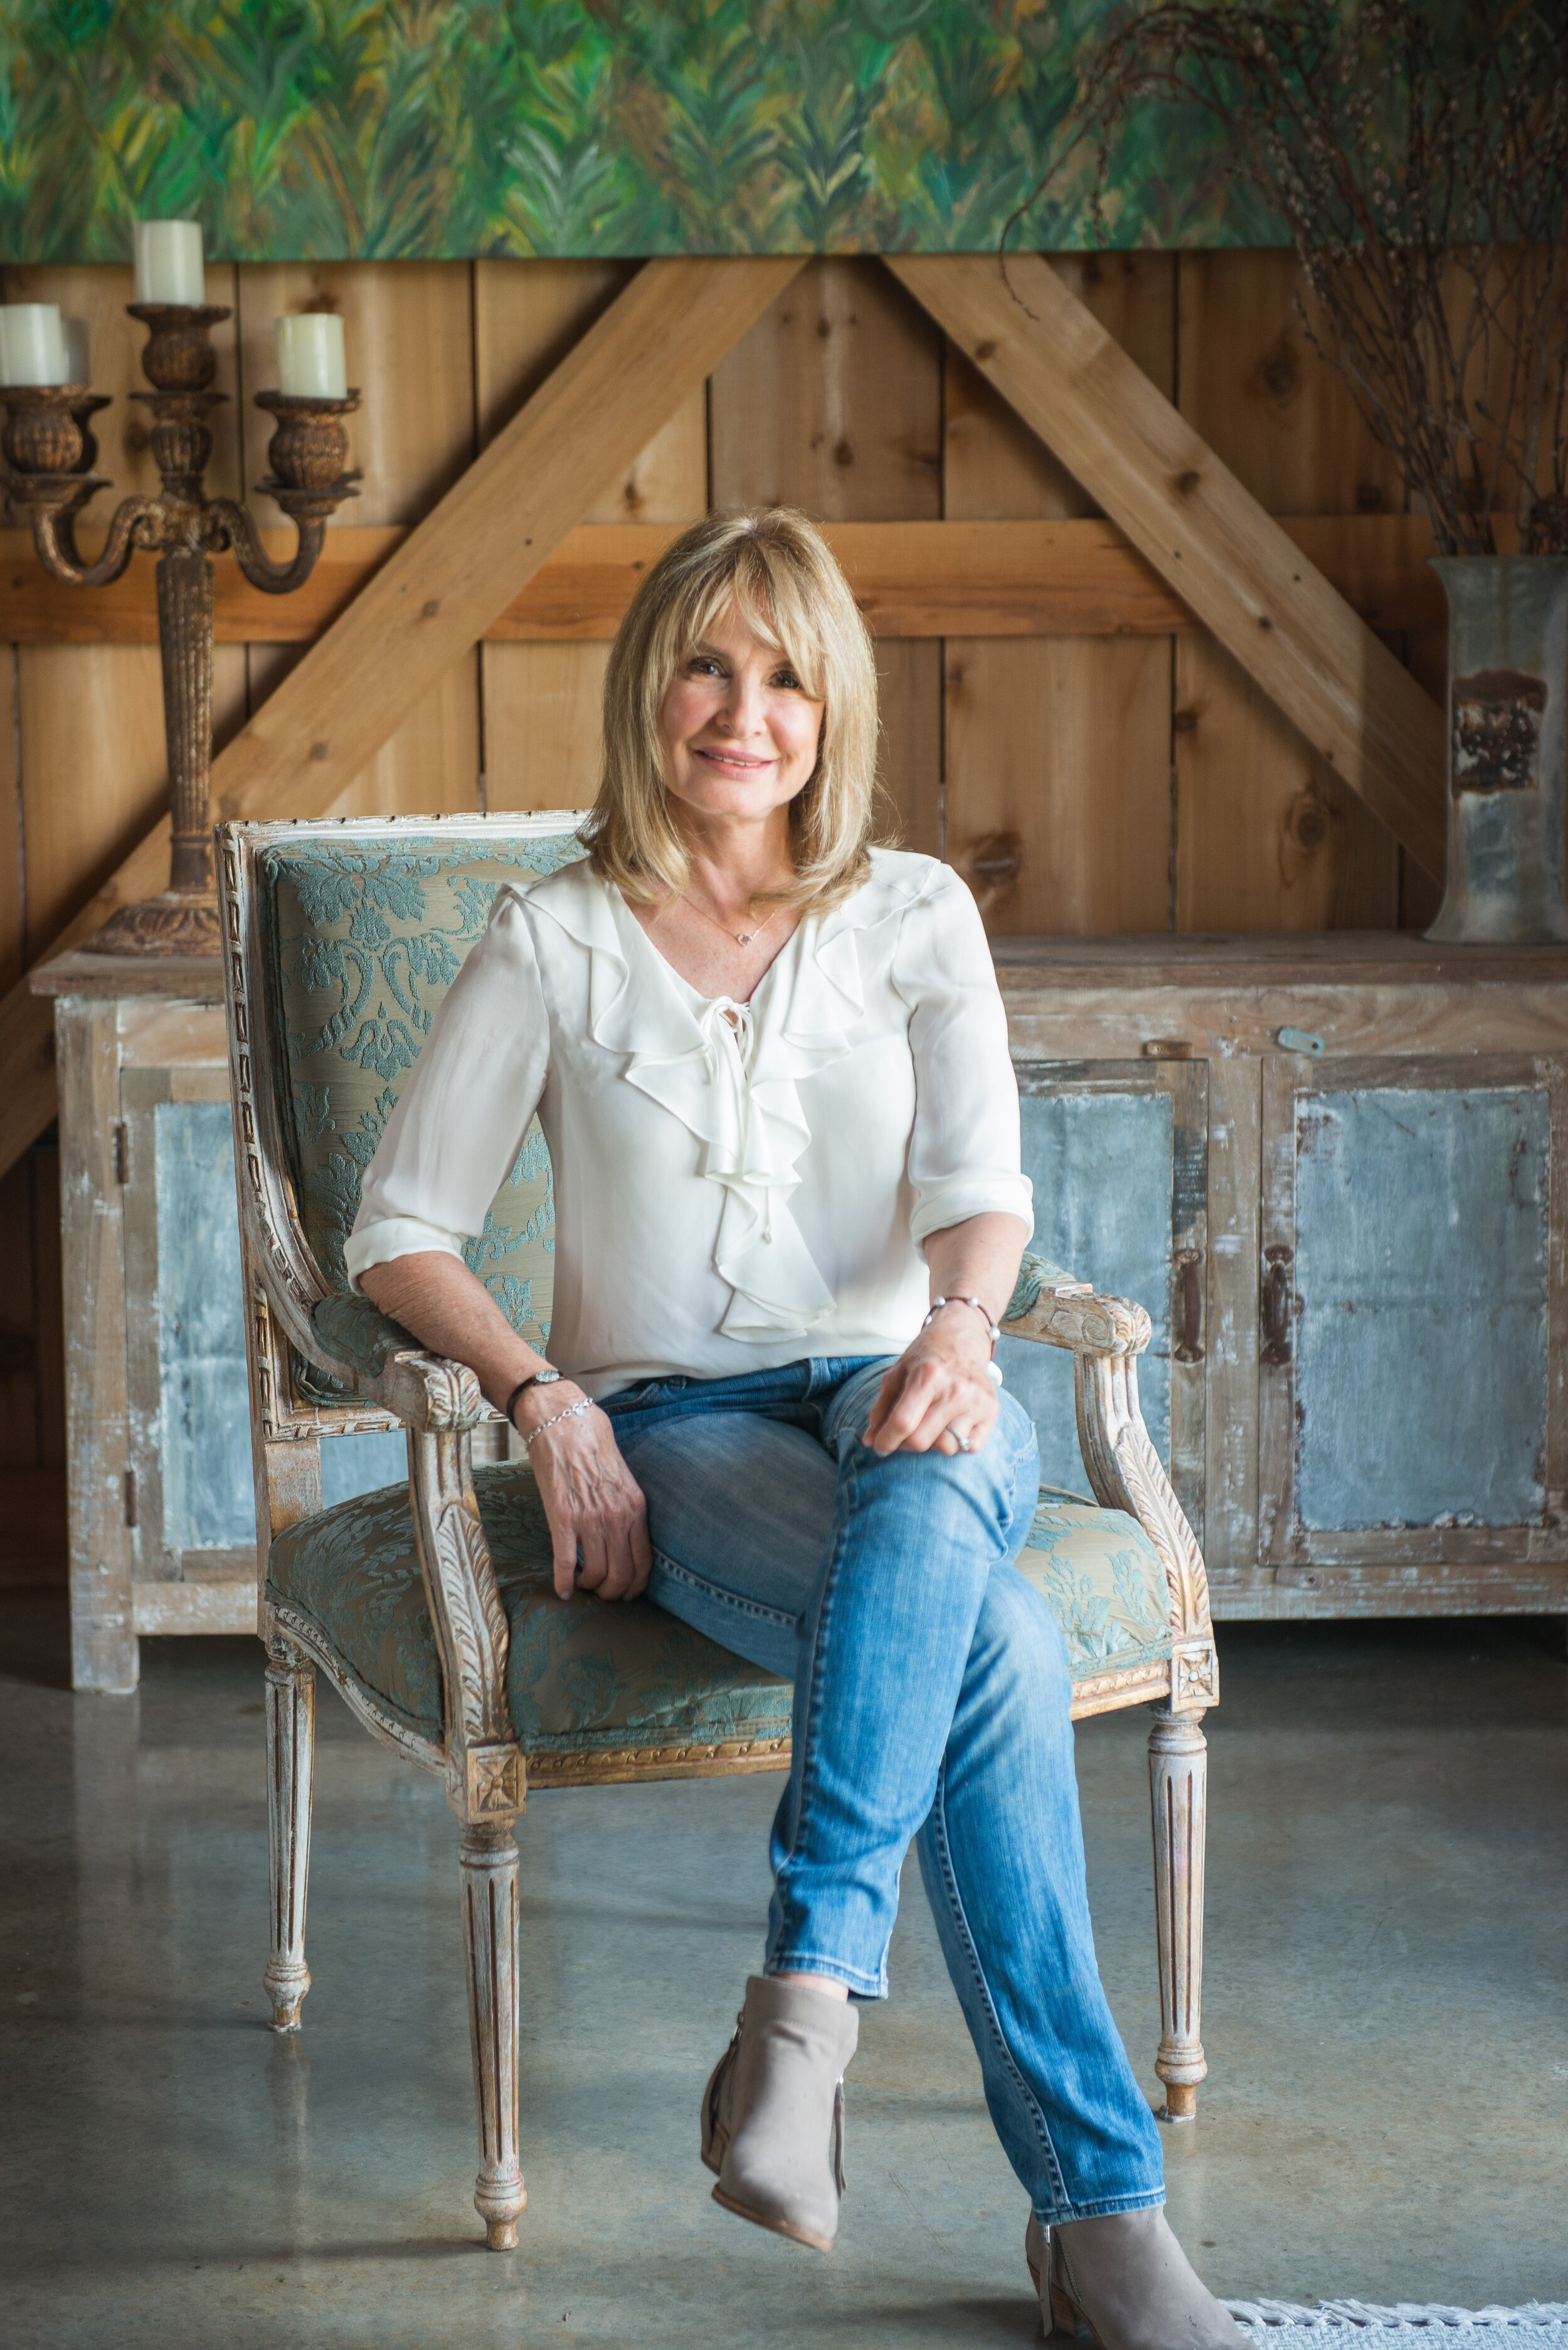 Linda O'Neal Owner of Essence of You Skin Care as featured in Blondie, by Crazy Blonde Life